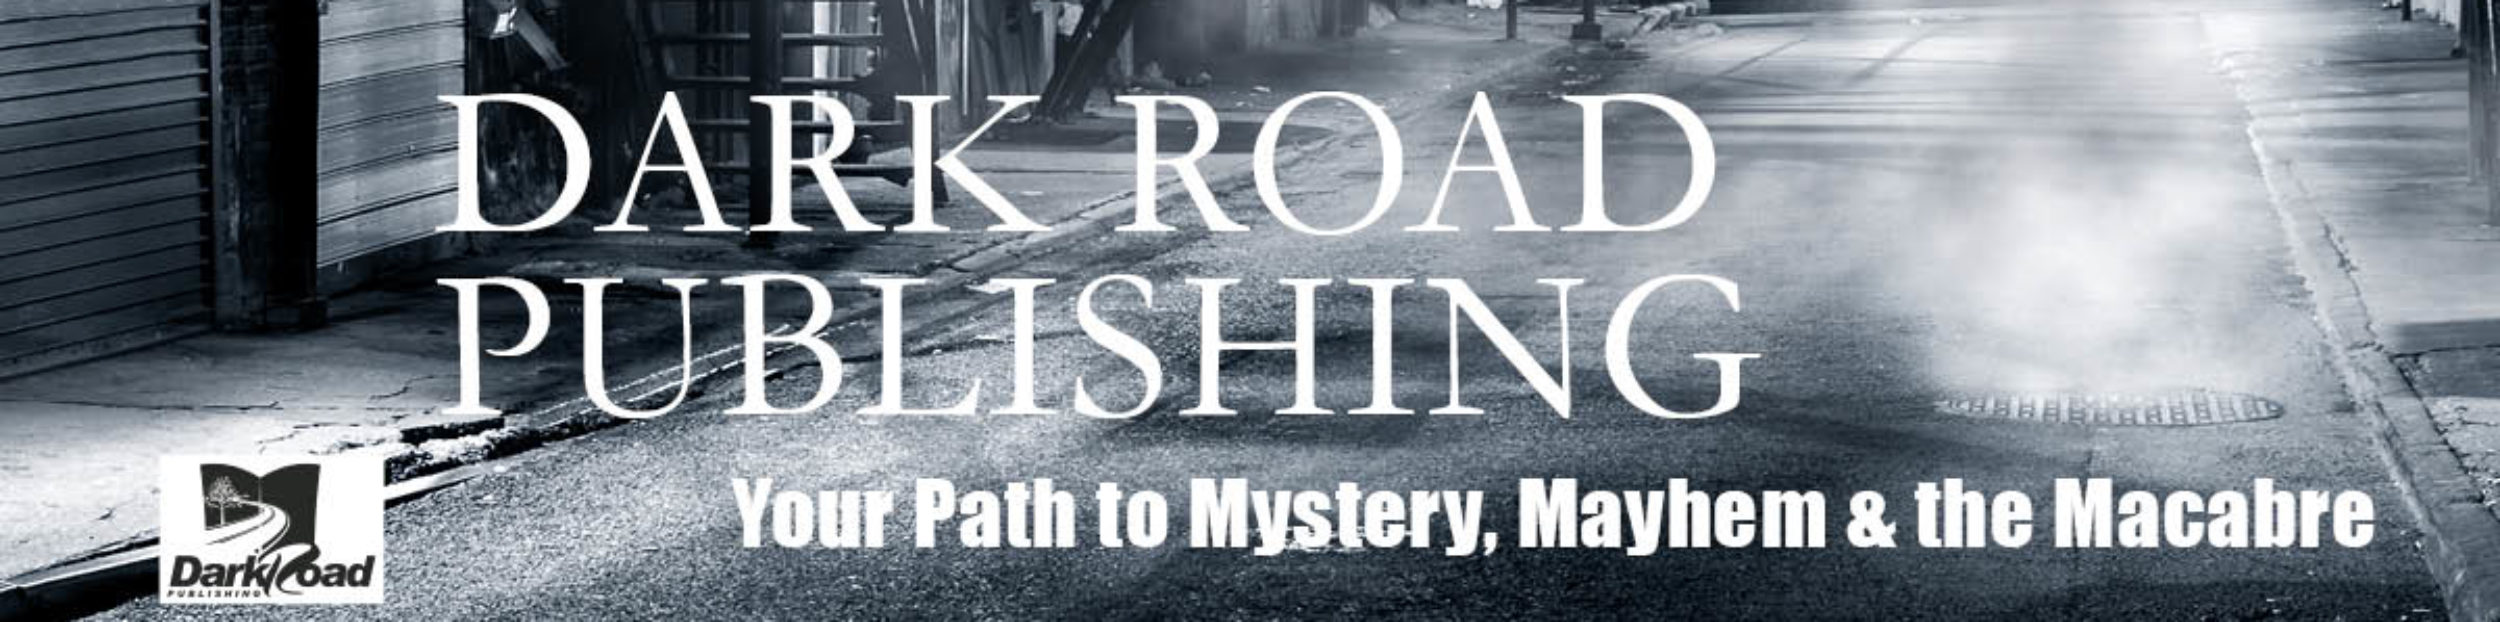 DARK ROAD PUBLISHING